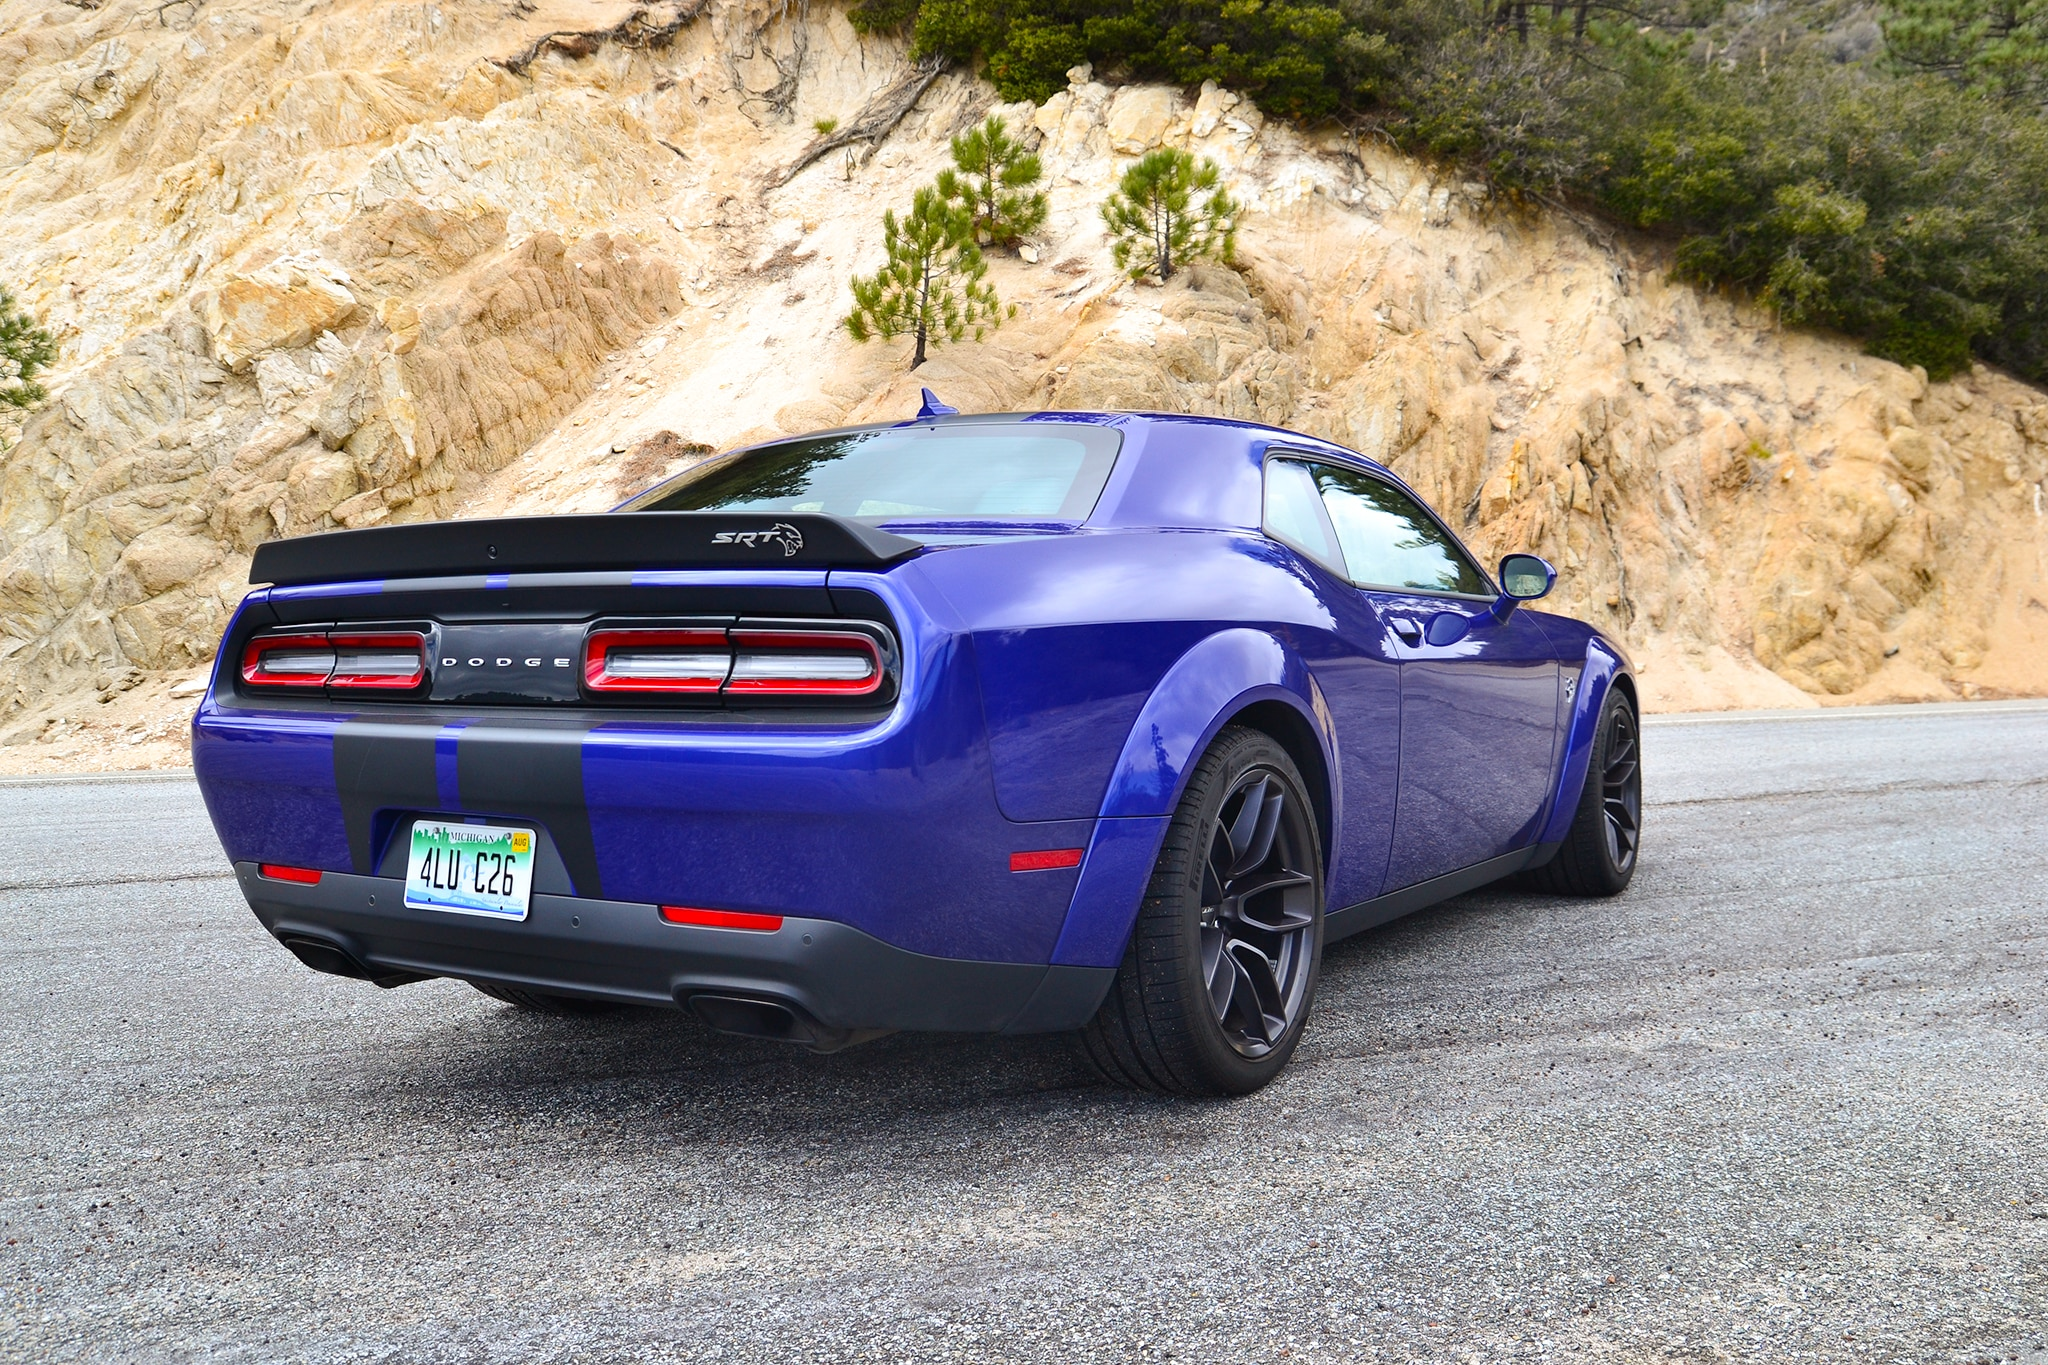 2018 Dodge Challenger Srt Hellcat Widebody Specifications